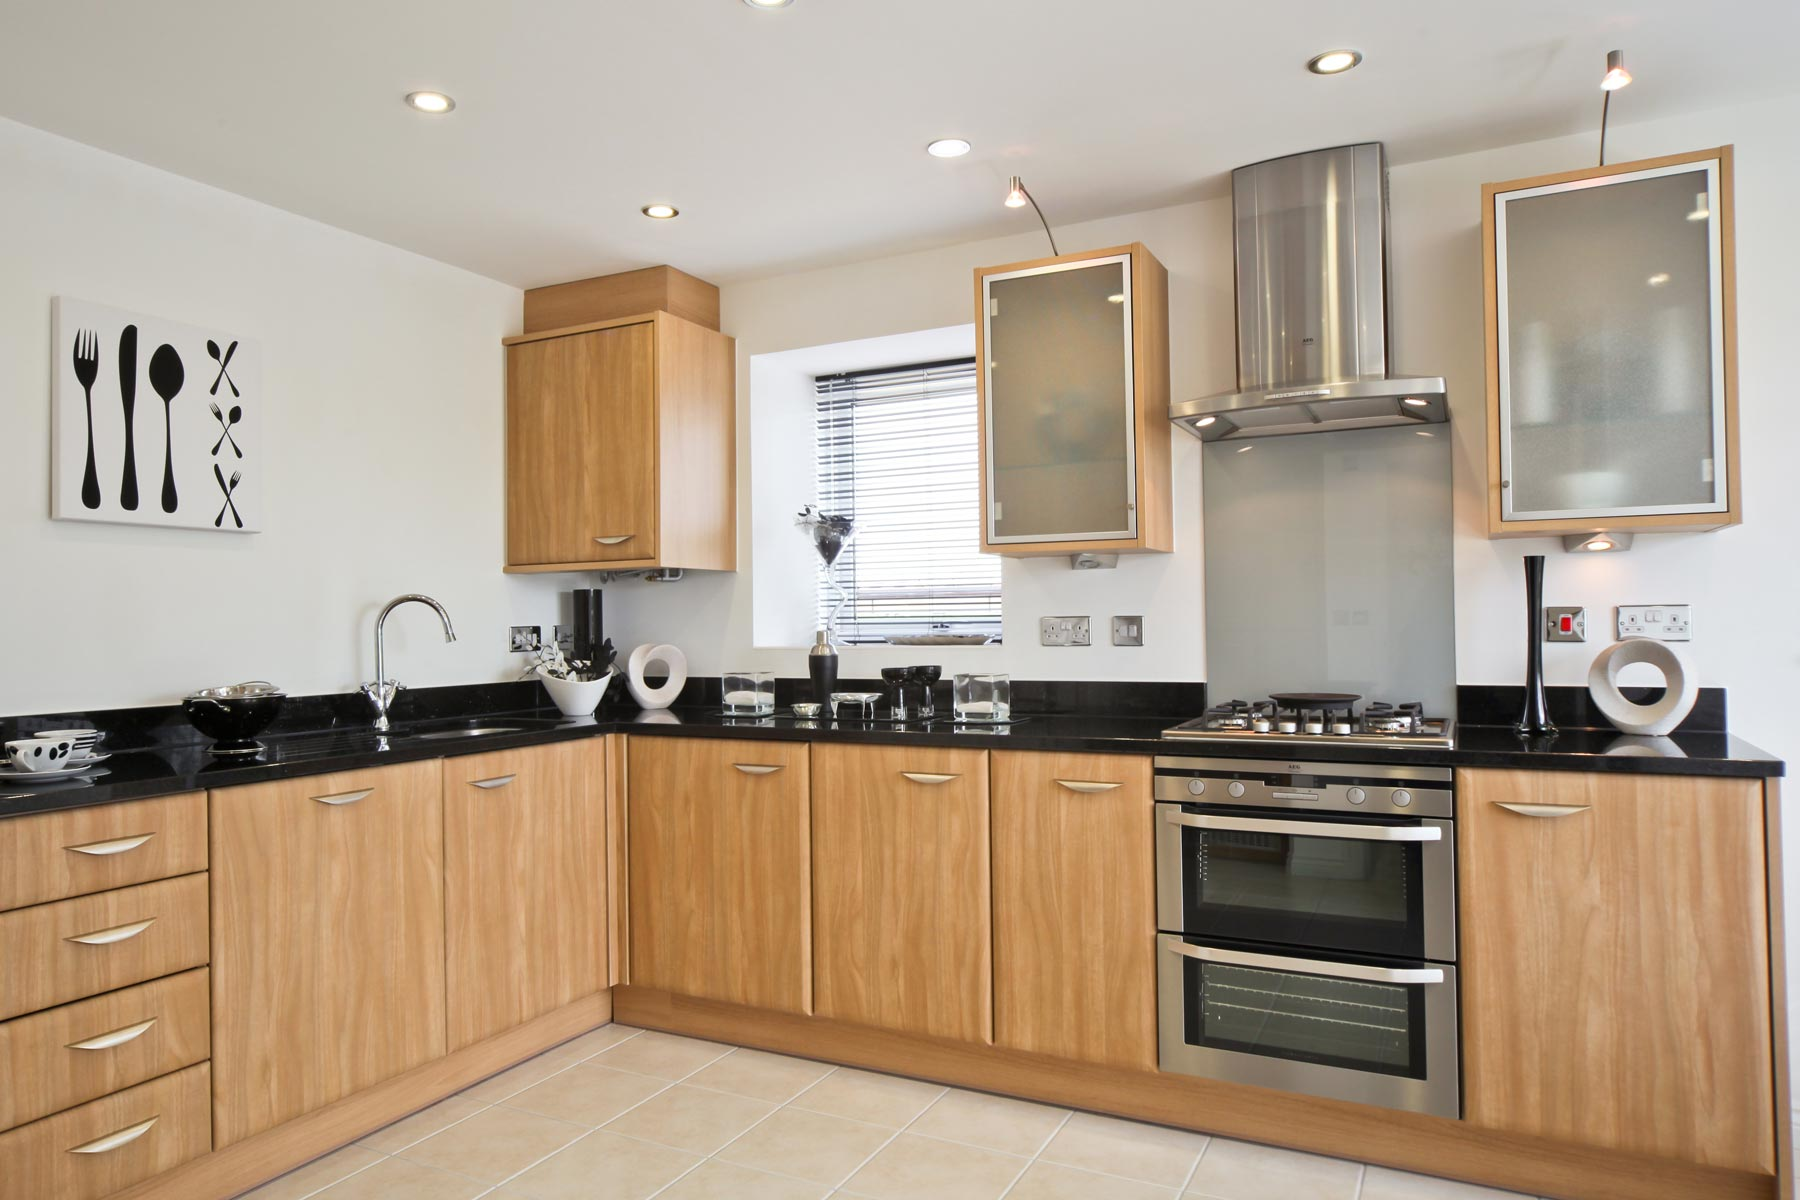 Photo of the kitchen from the Kirkstone show home at Kingston Chase